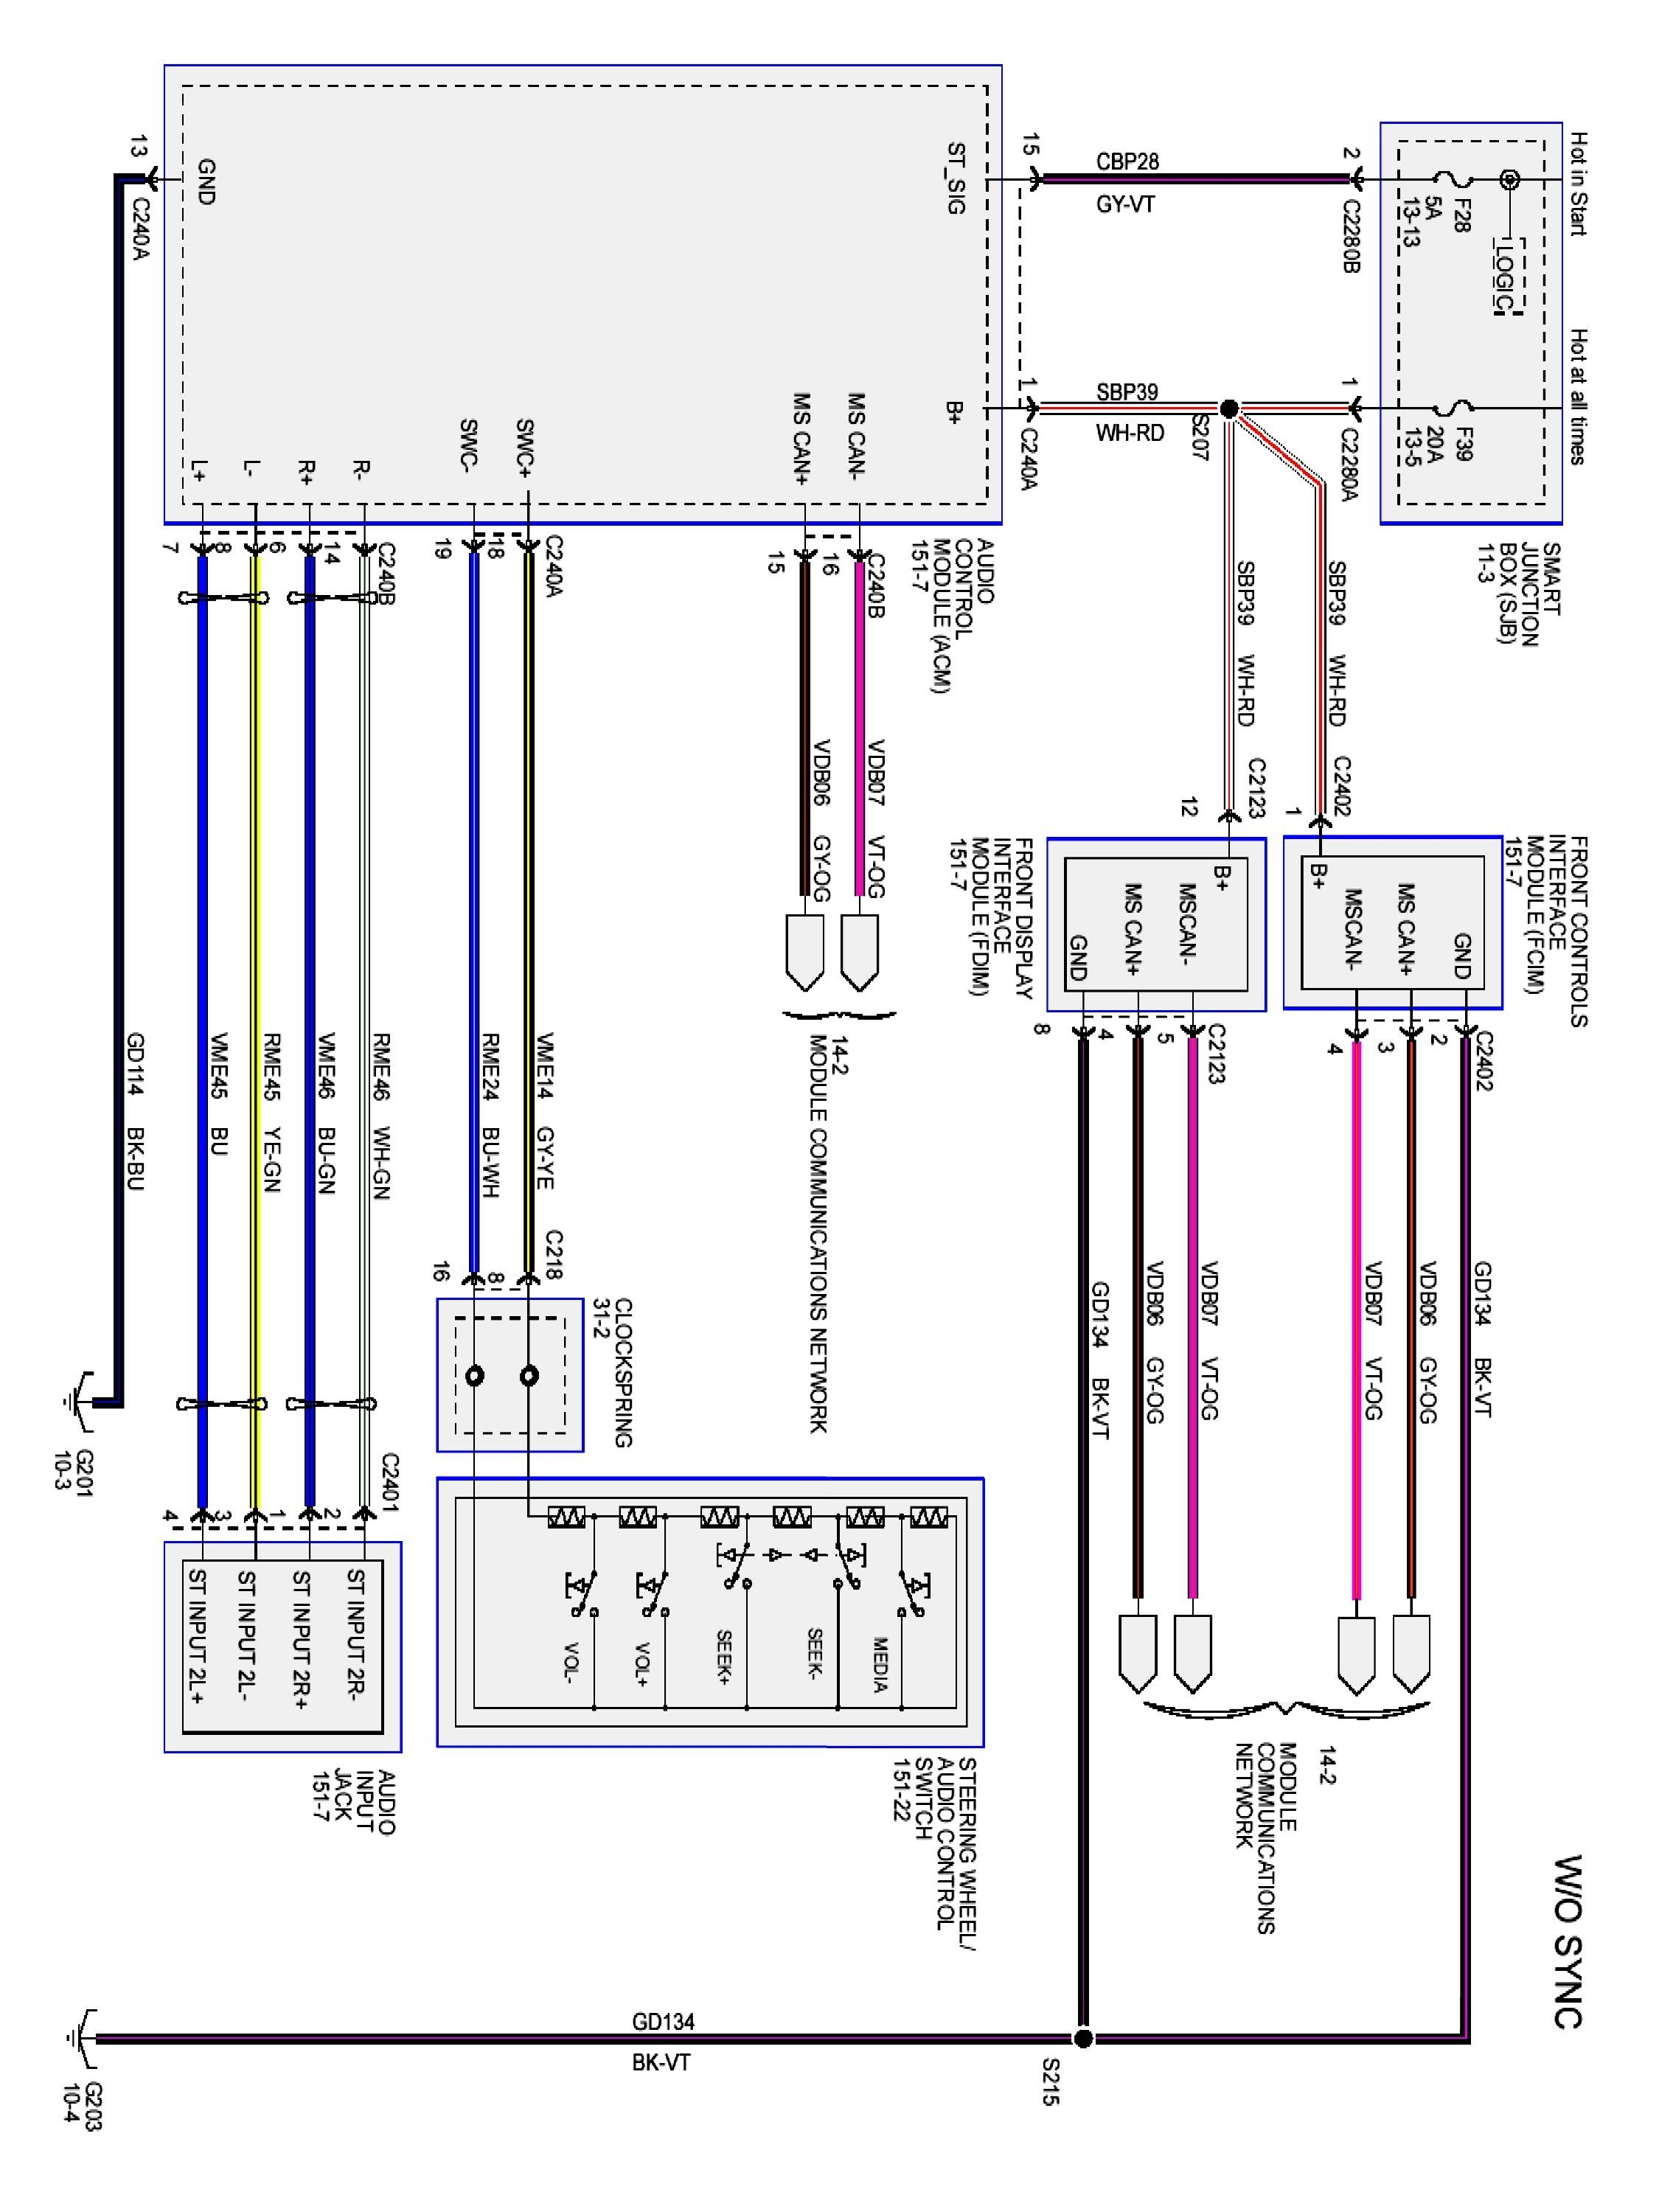 1998 Ford Expedition Stereo Wiring Diagram Simple Electrical 98 4x4 Radio Head Unit Harness Ranger